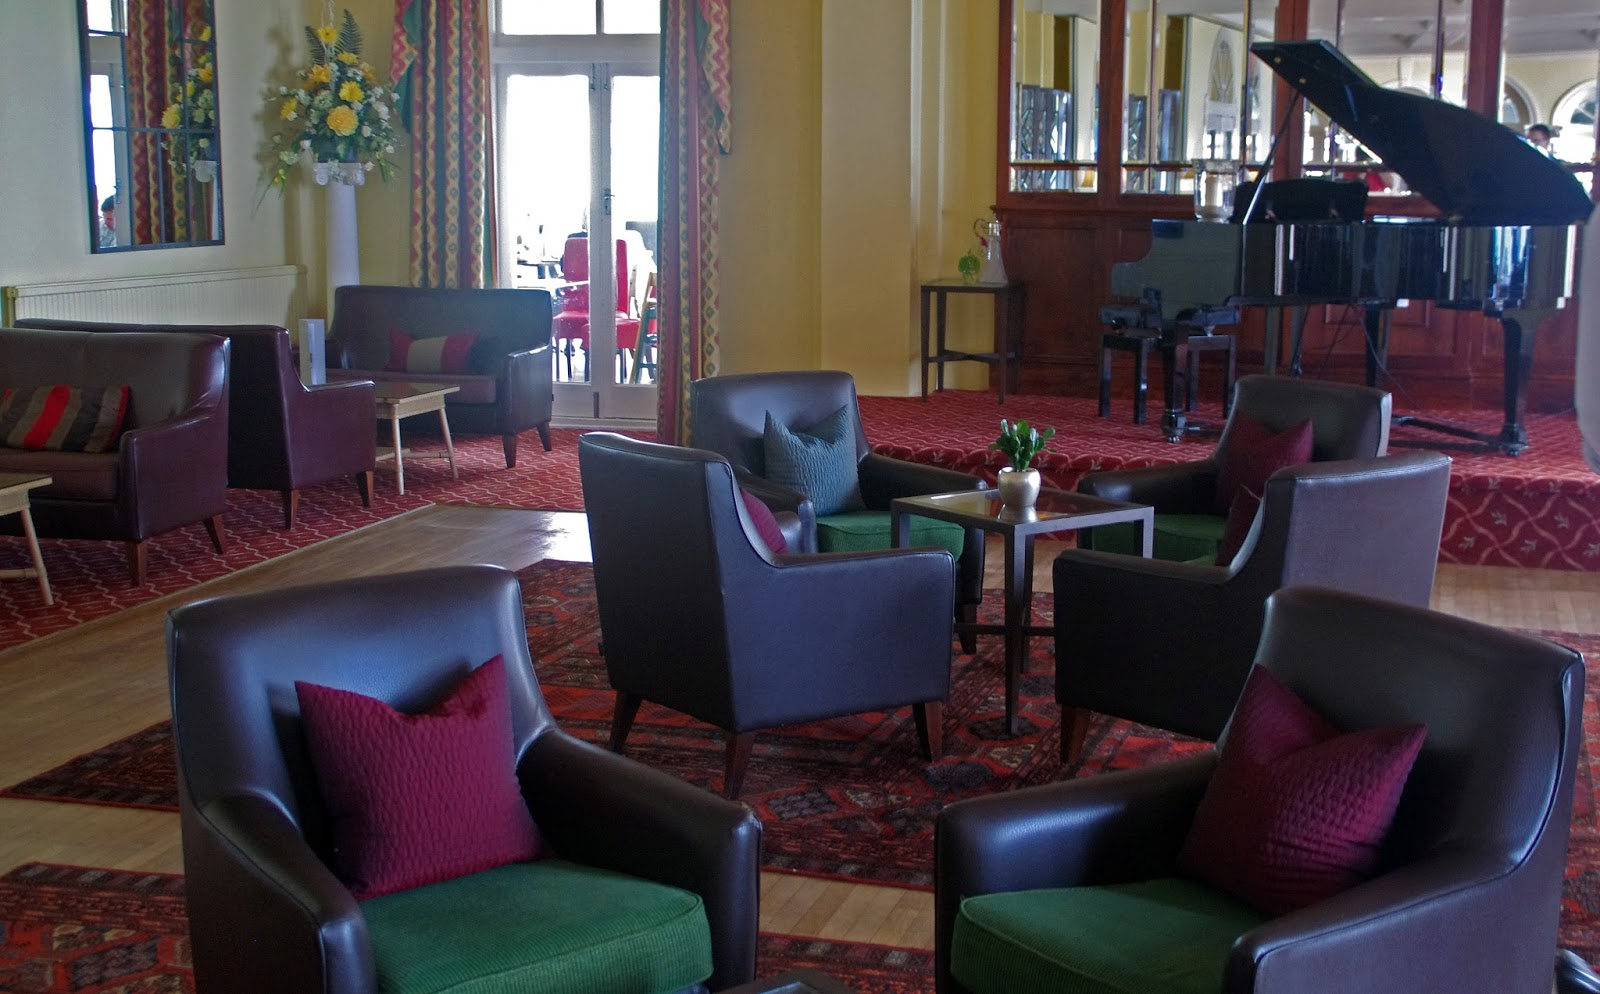 Headland Hotel Newquay Cornwall Interior